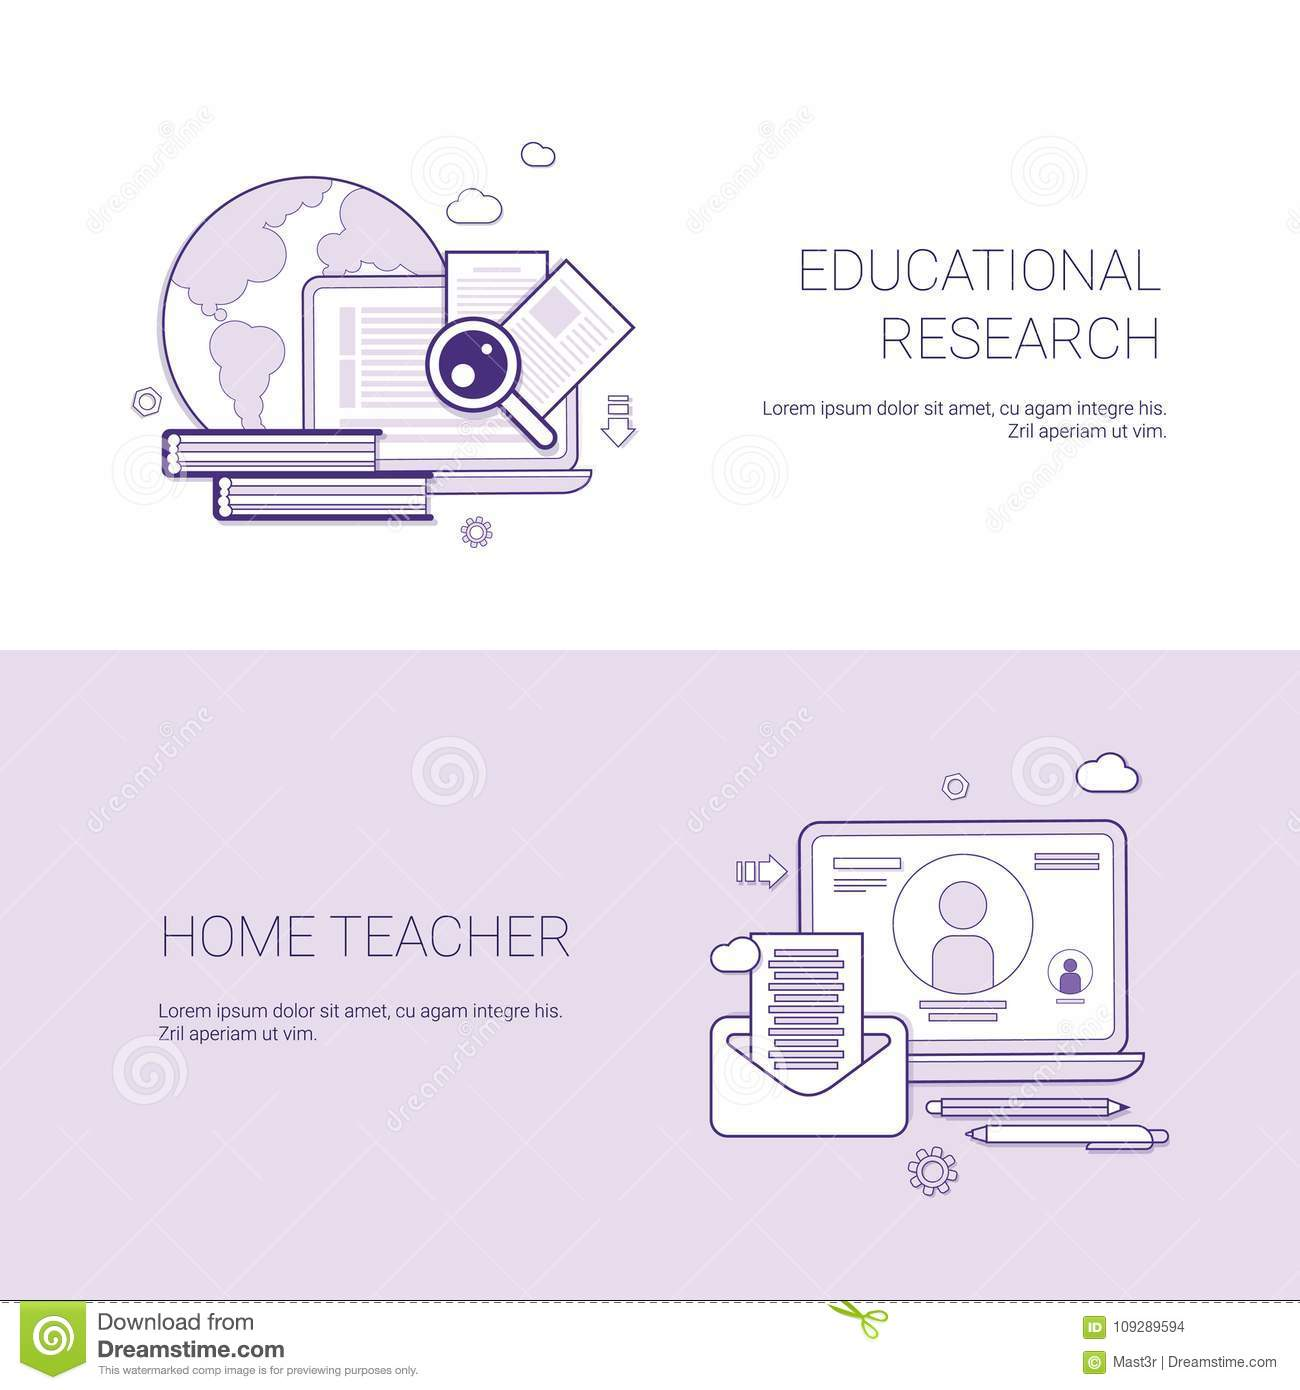 Set of educational research and home teacher banners business download set of educational research and home teacher banners business concept template background with copy space cheaphphosting Image collections